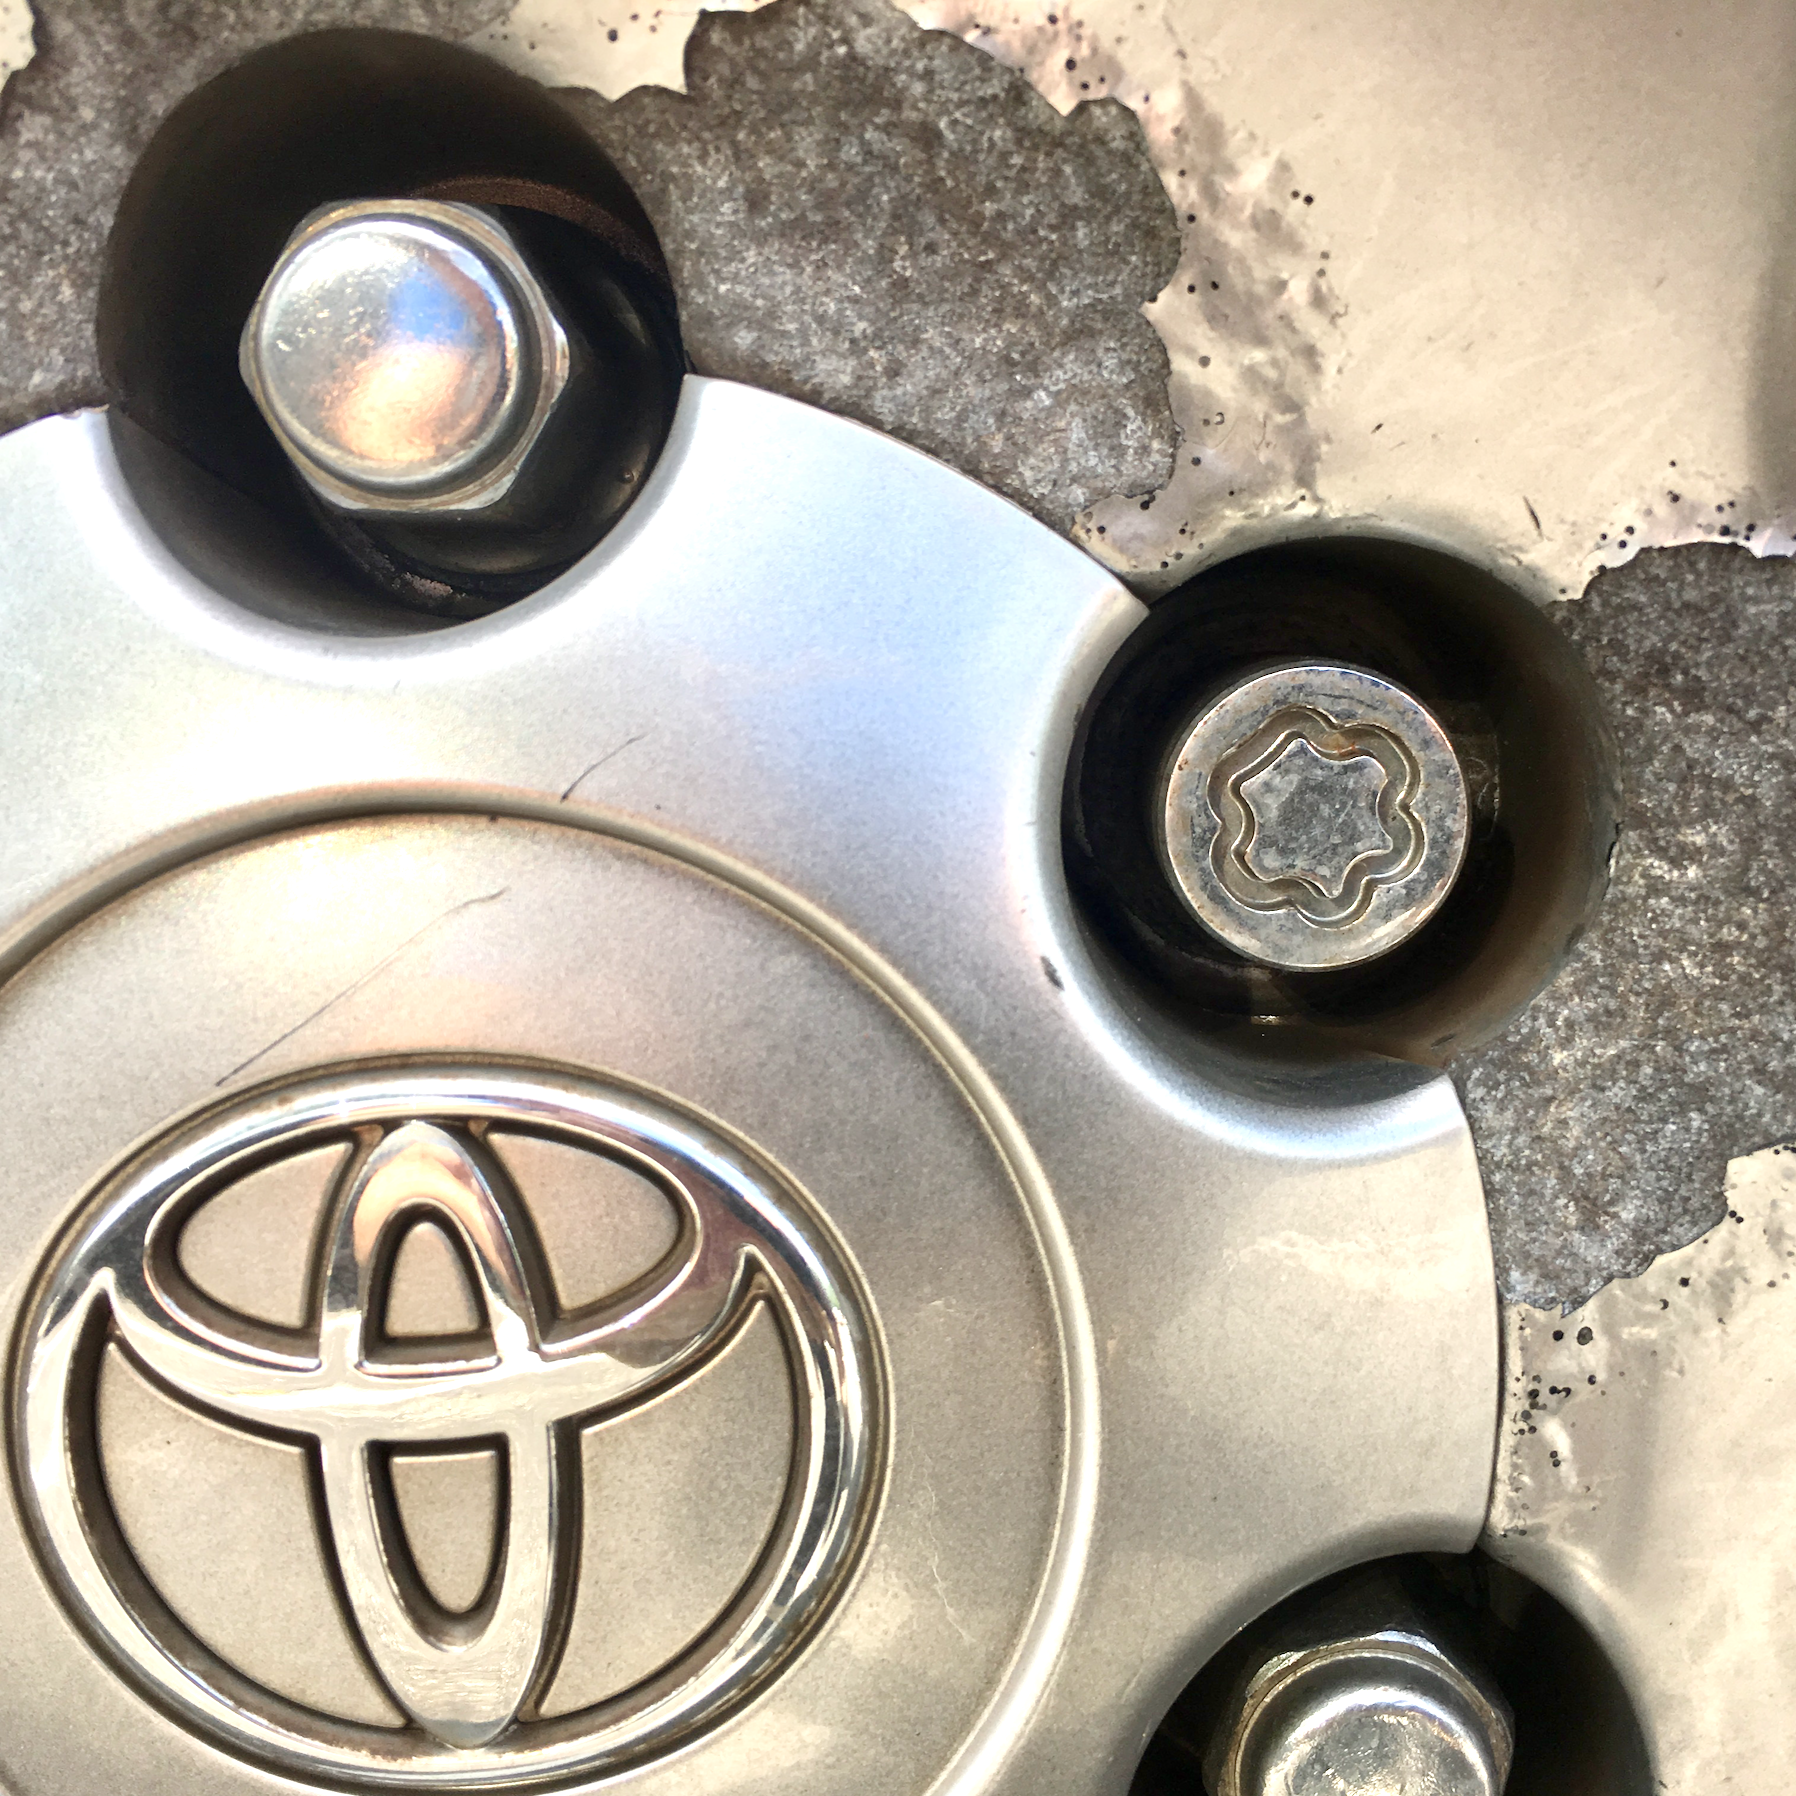 A locking lug nut flanked by two standard lug nuts. If your car has locking lug nuts make SURE you have the key to remove them.